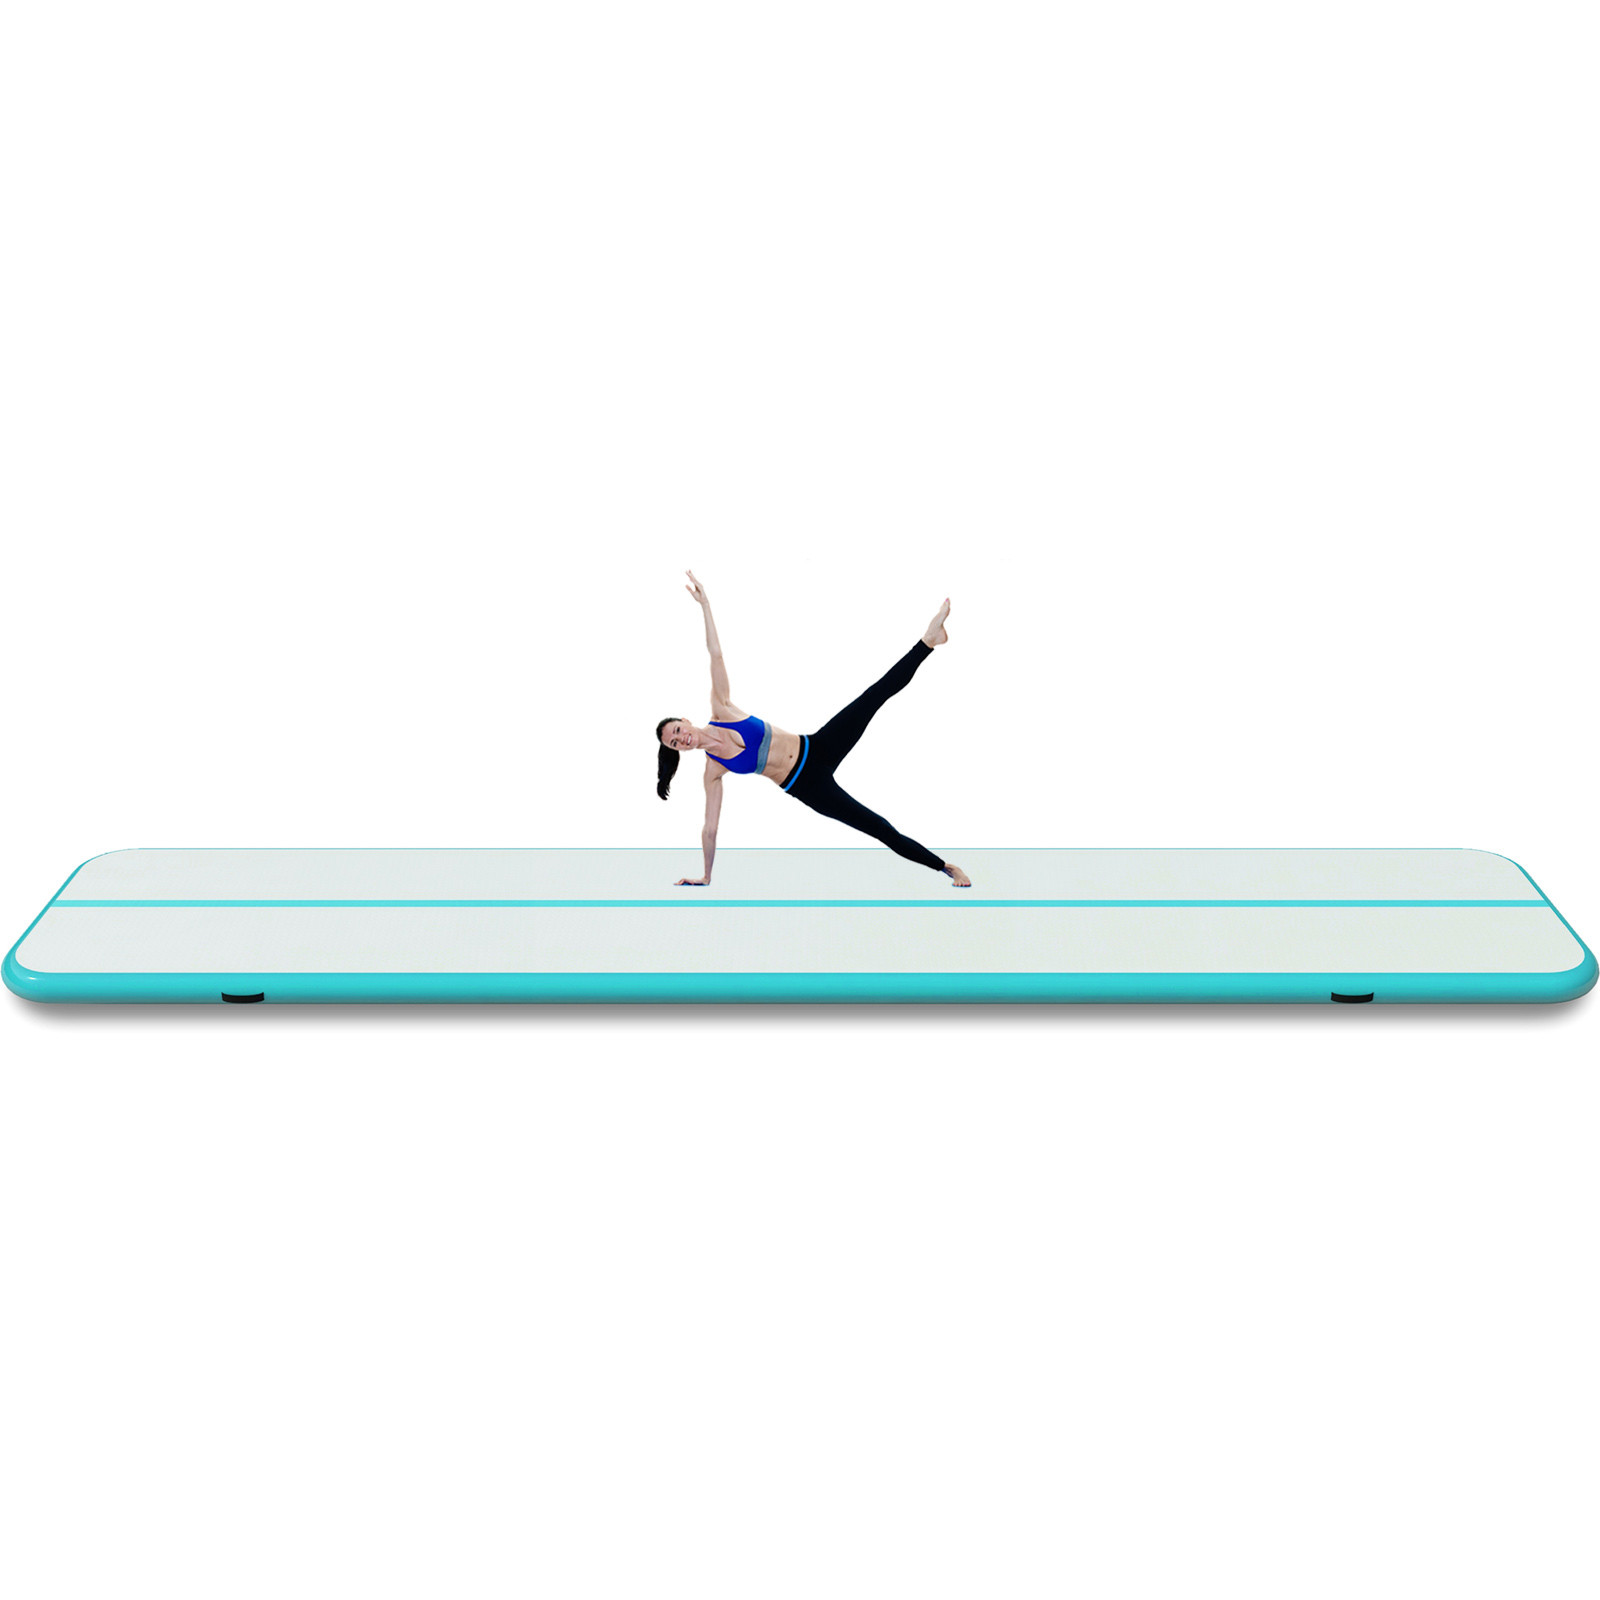 4-12M-Tapis-de-Gymnastique-Gonflable-Yoga-Fitness-Tapis-de-Tumbling-Airtrack miniature 94